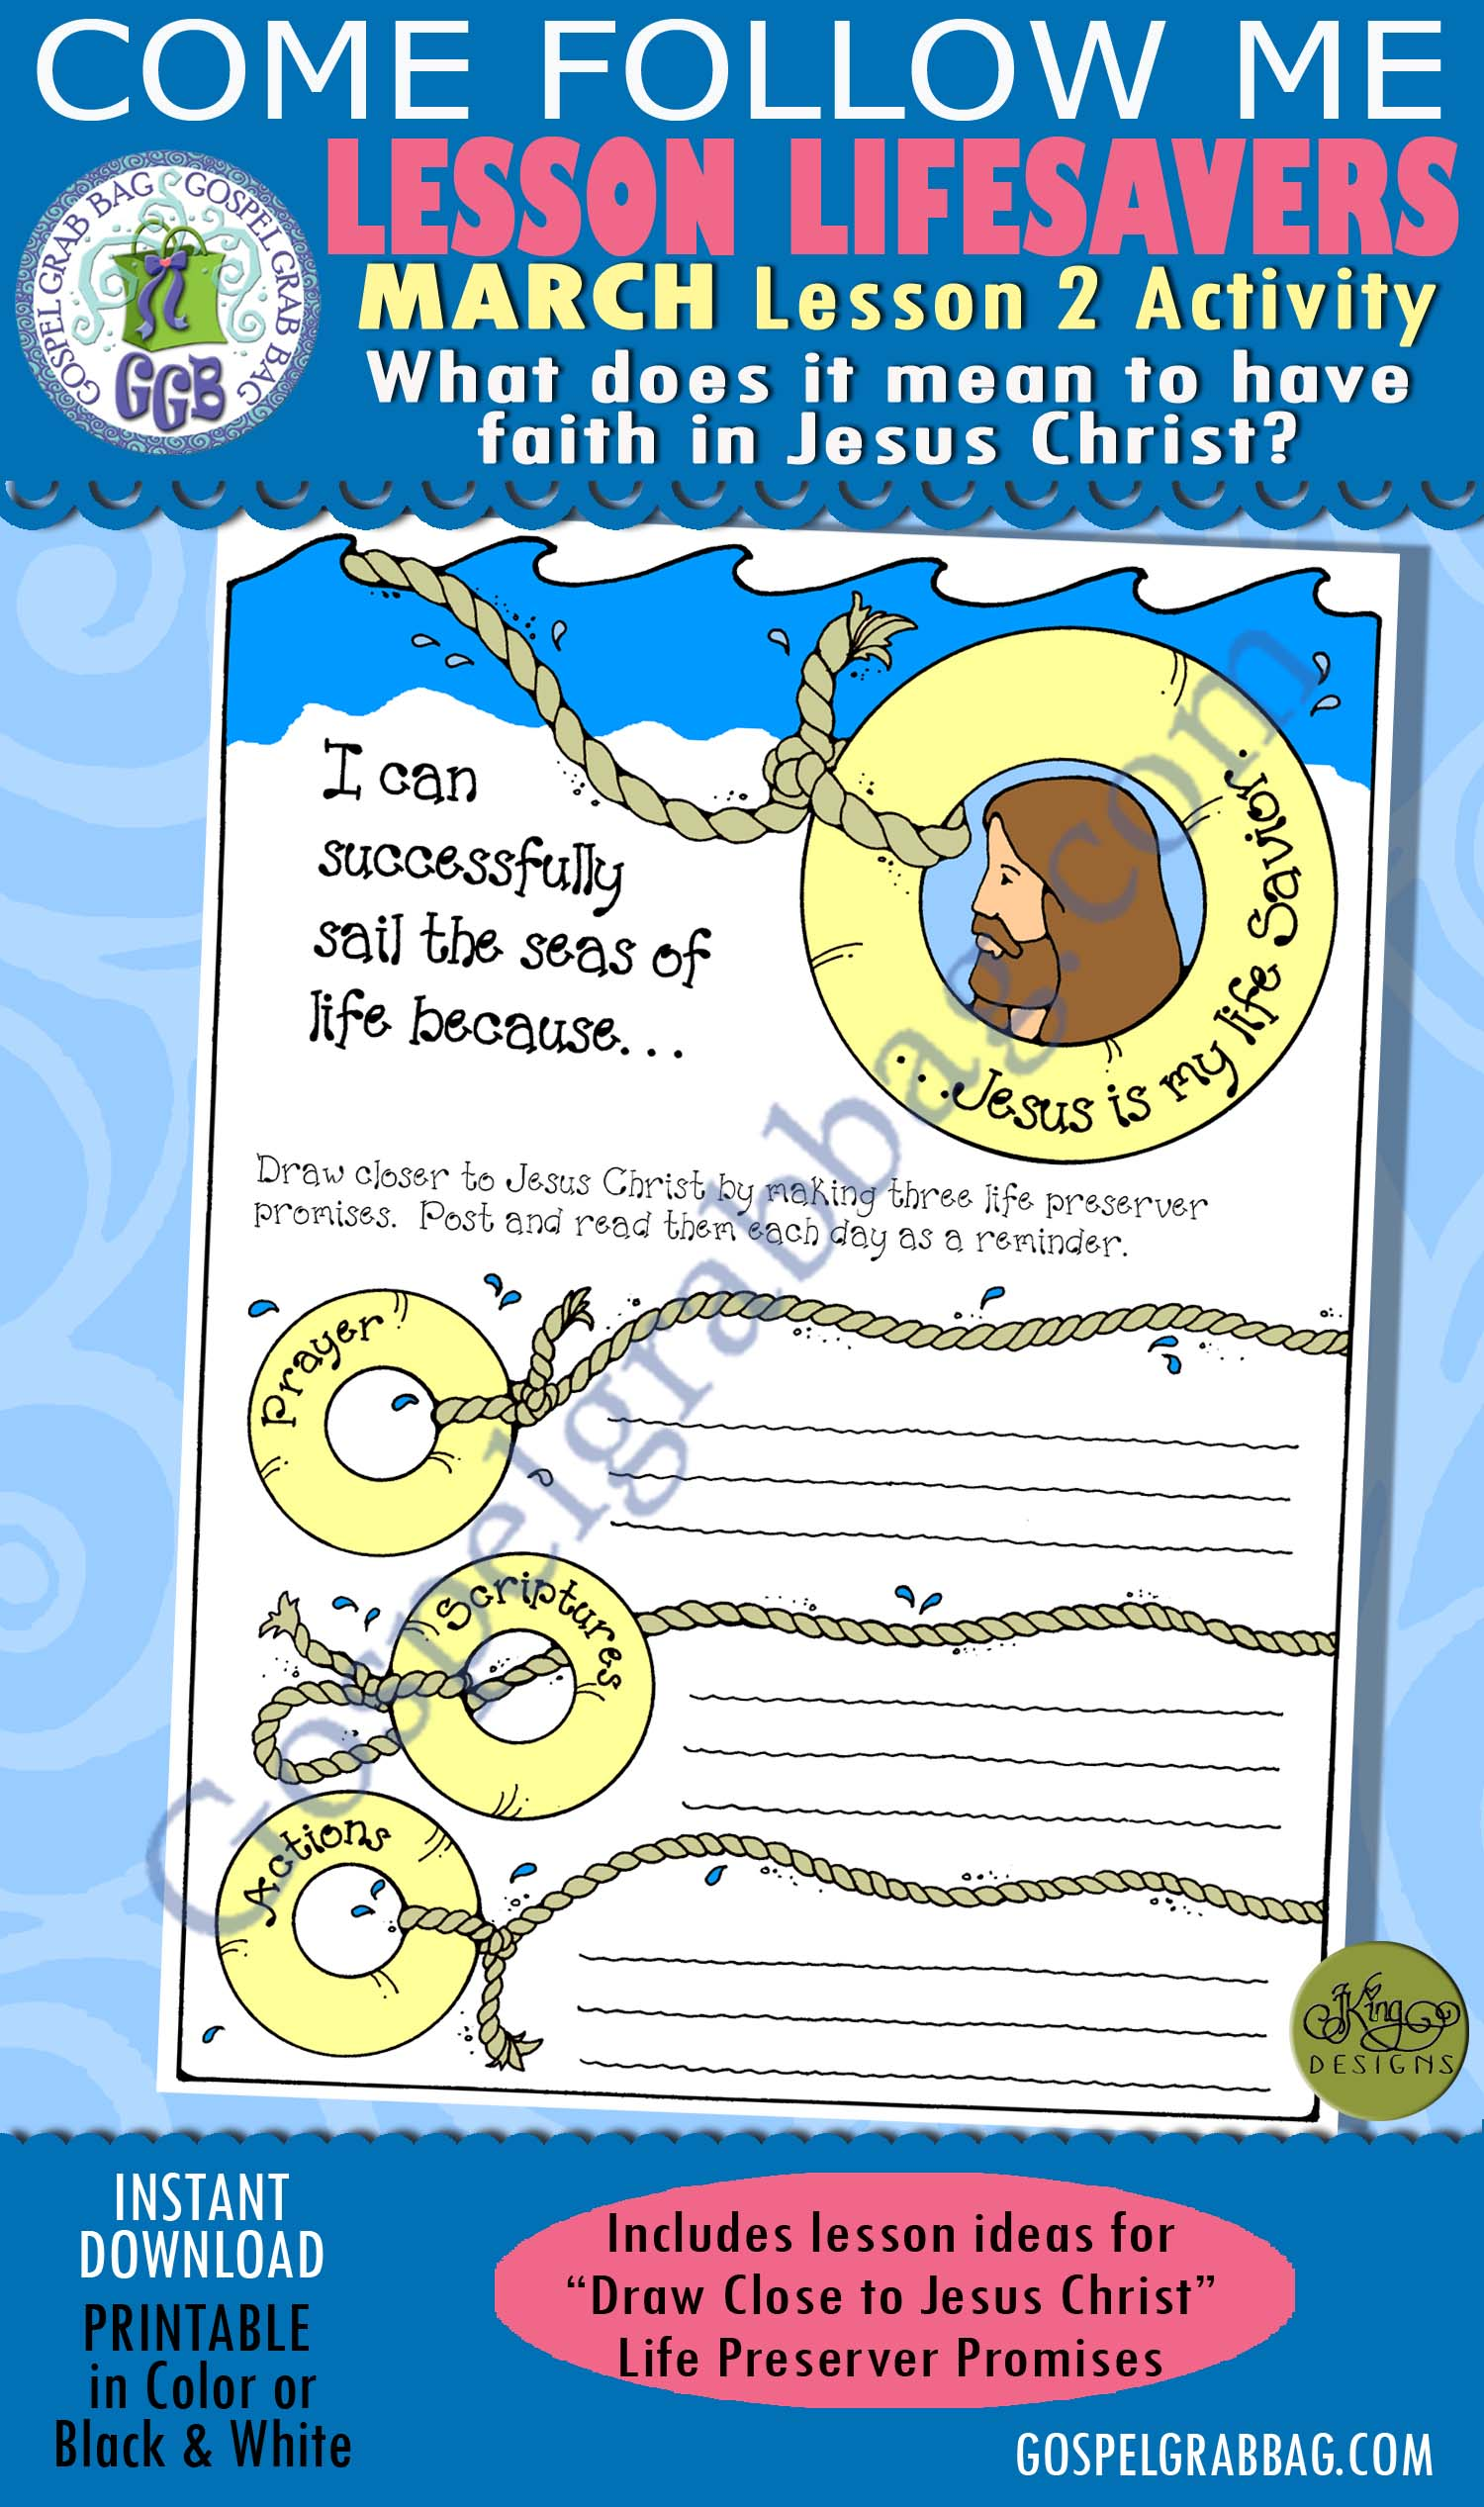 """$1.75 MARCH Lesson 2 Come Follow Me """"What does it mean to have faith in Jesus Christ?"""" ACTIVITY: Draw Close to Christ - Lifesaver Preserver Promises poster"""